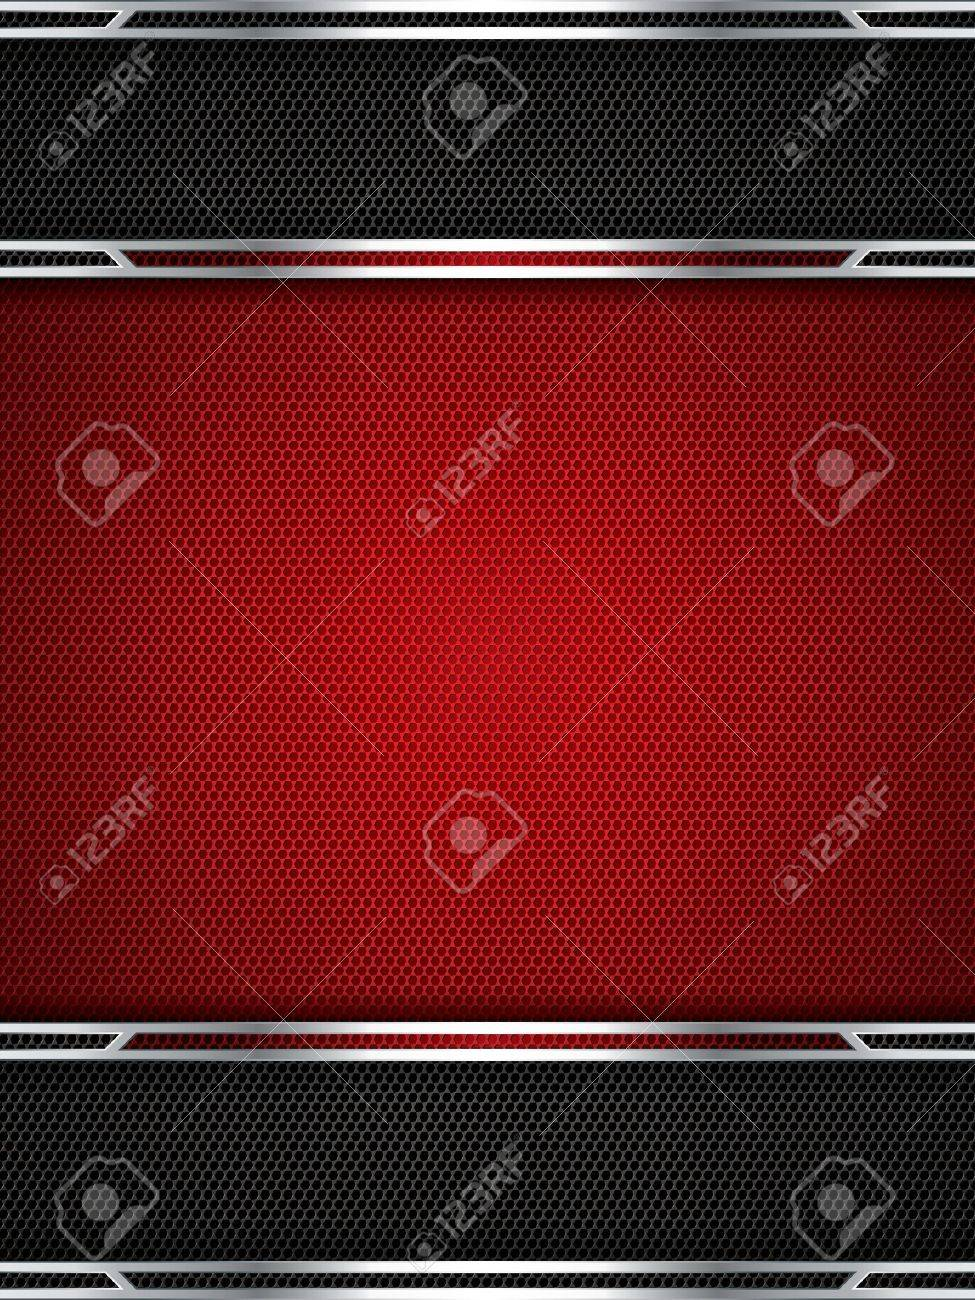 Abstract background, metallic red brochure - 16298122